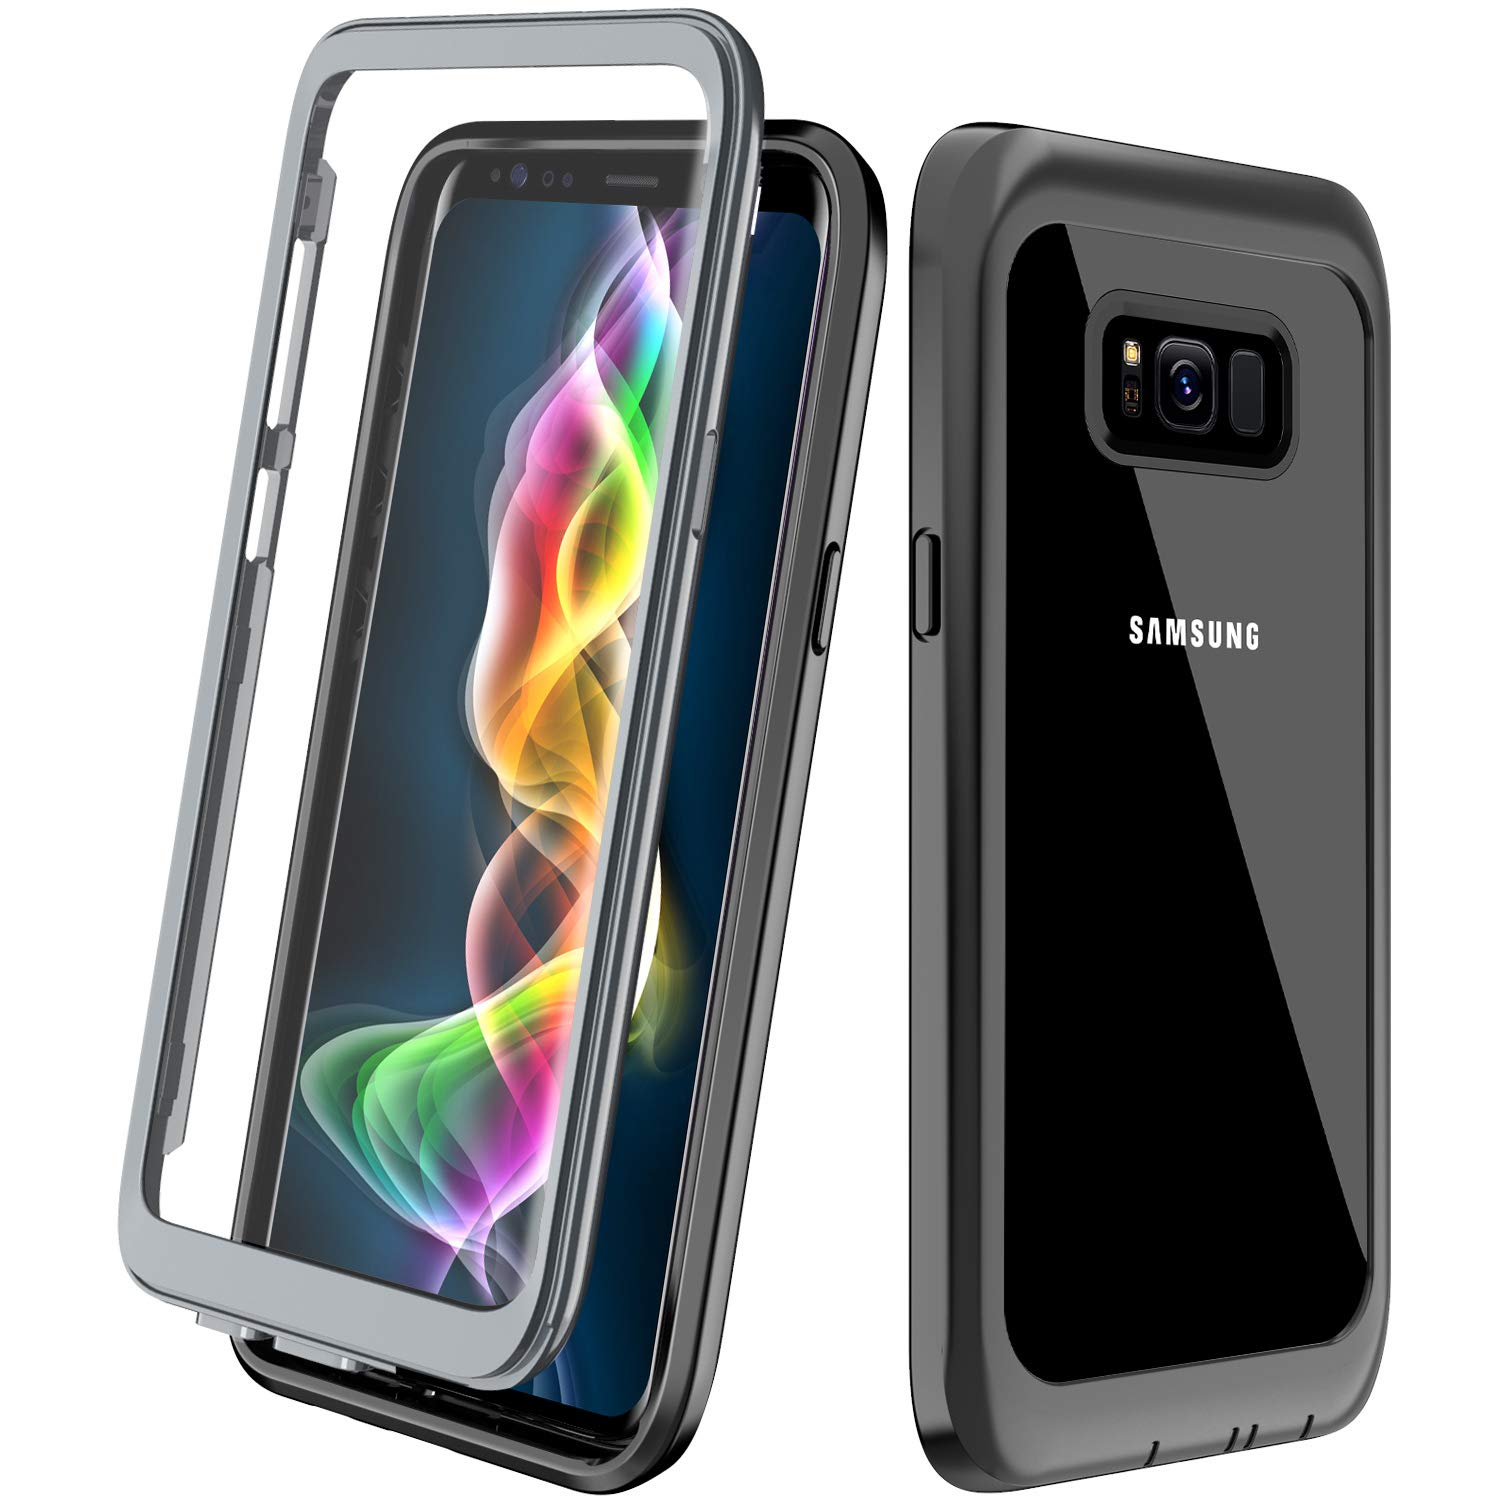 Samsung Galaxy S8 Case, ALOFOX Full Body Bumper Case Built-in Screen Protector Slim Clear Shock-Absorbing Dustproof Lightweight Cover Case Samsung Galaxy S8 (5.8 Inch) (Black) 4348737089